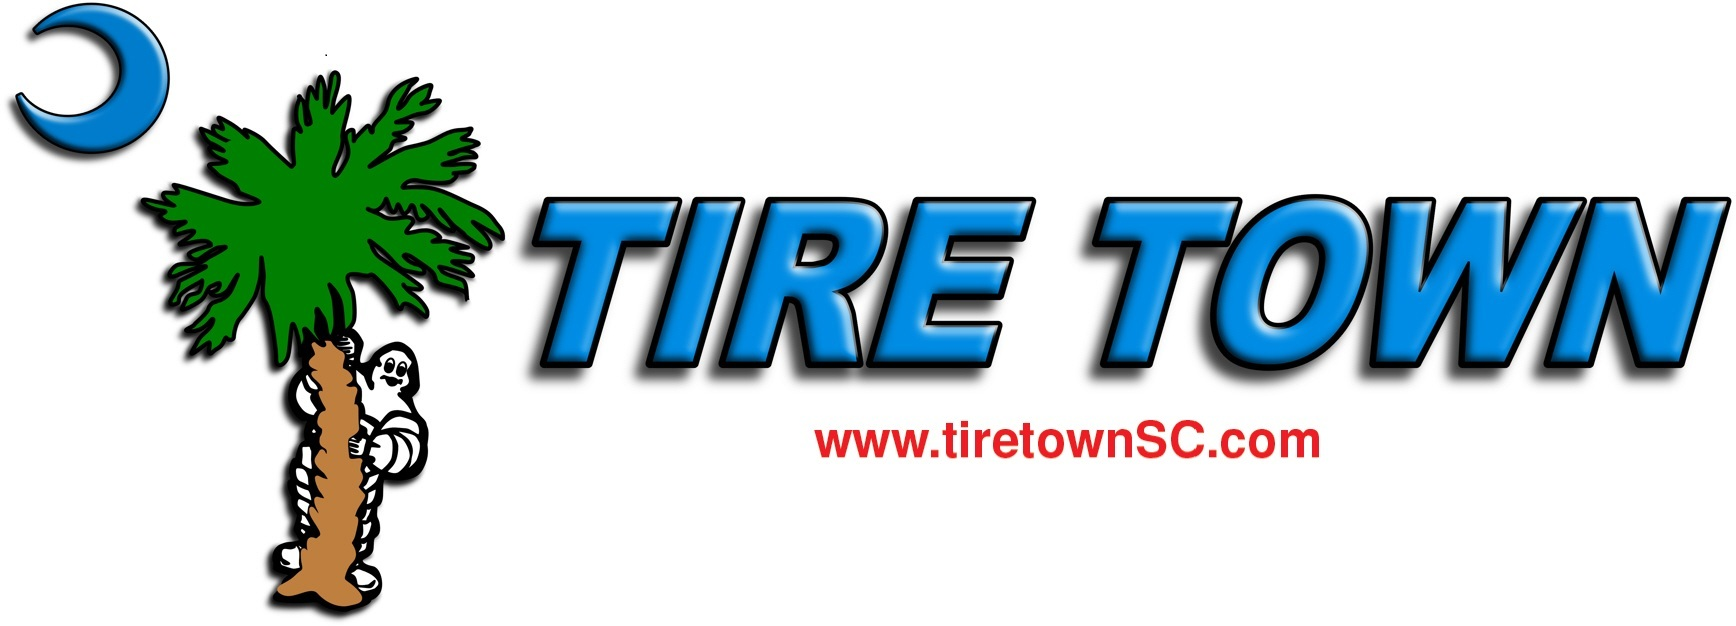 Tire Town on Waccamaw